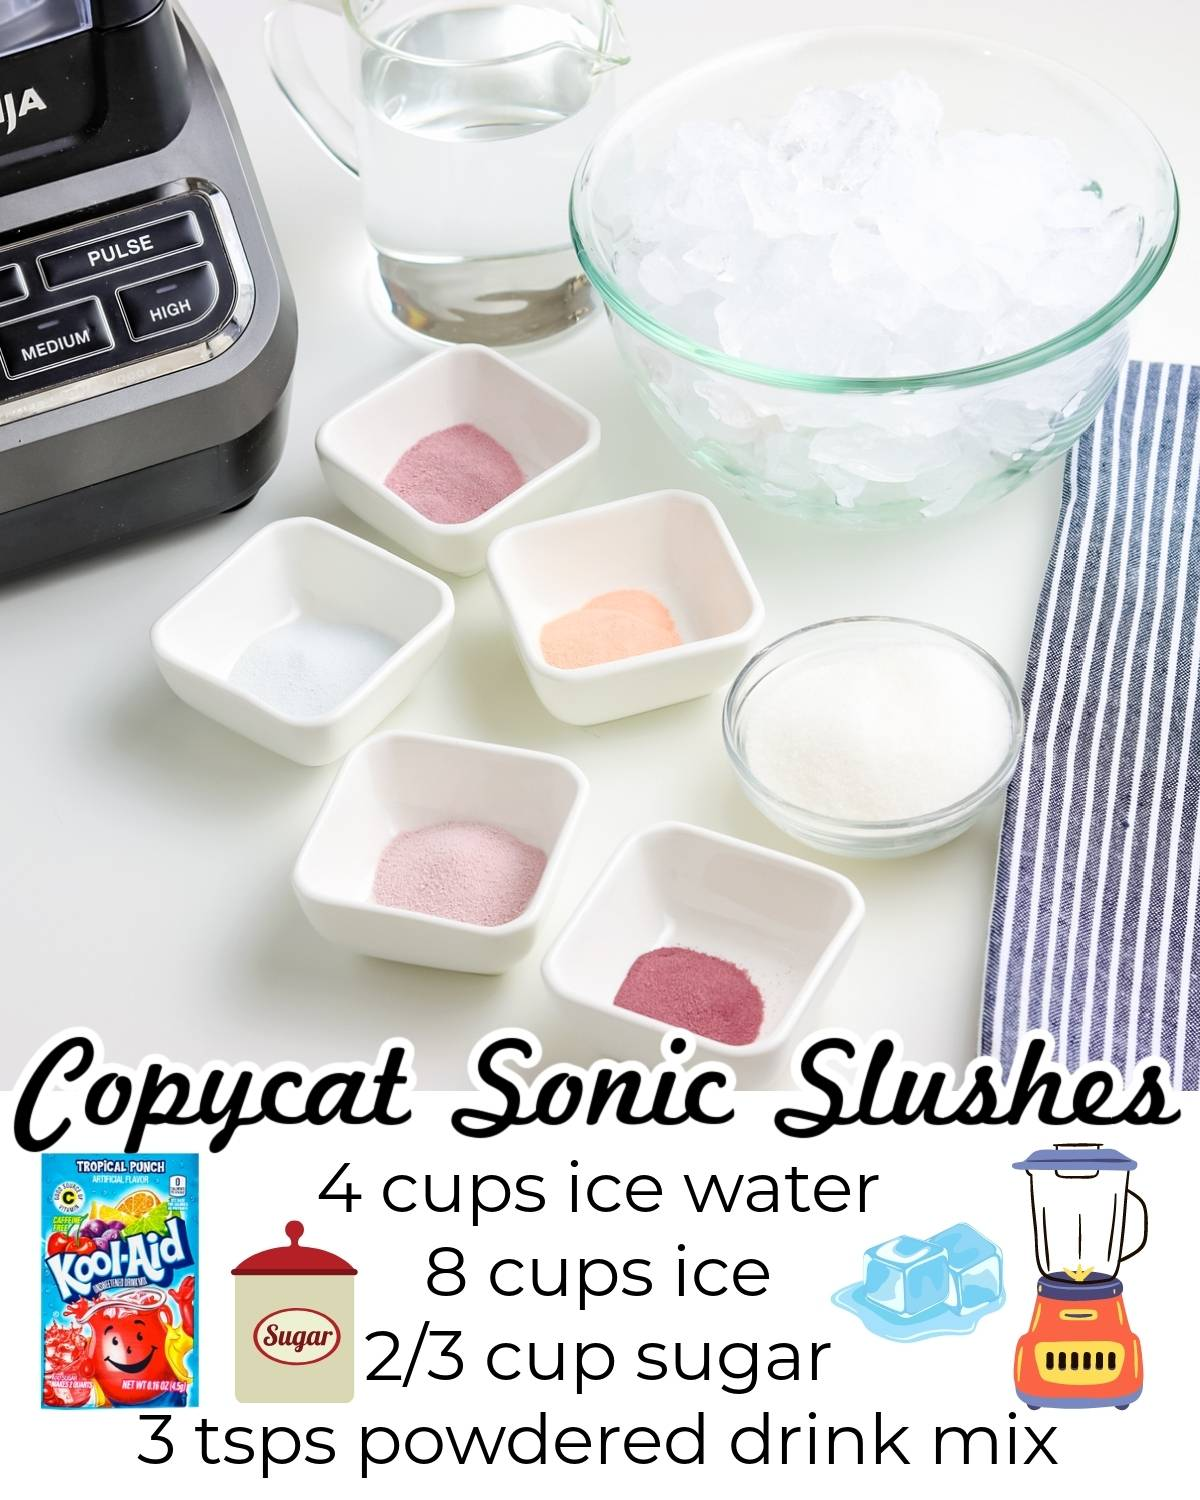 All of the ingredients needed to make this Copycat Sonic Slushes recipe.